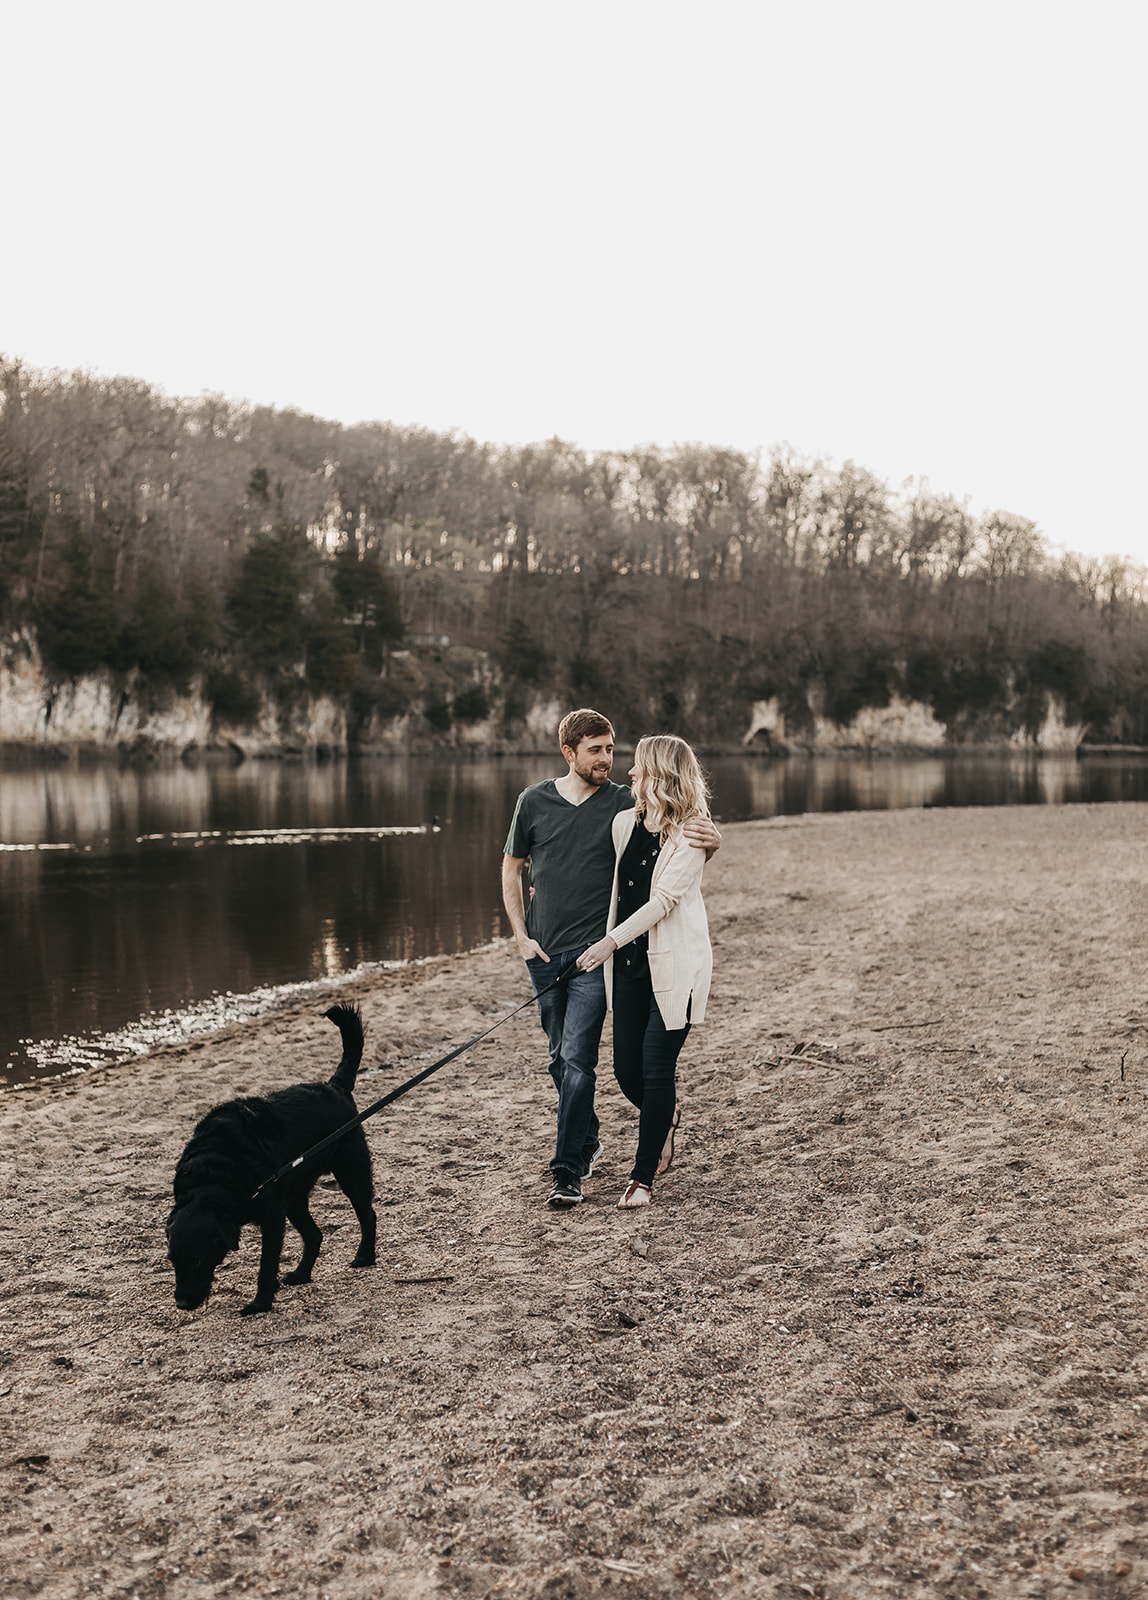 Palisades State Park Engagement Session with Dog